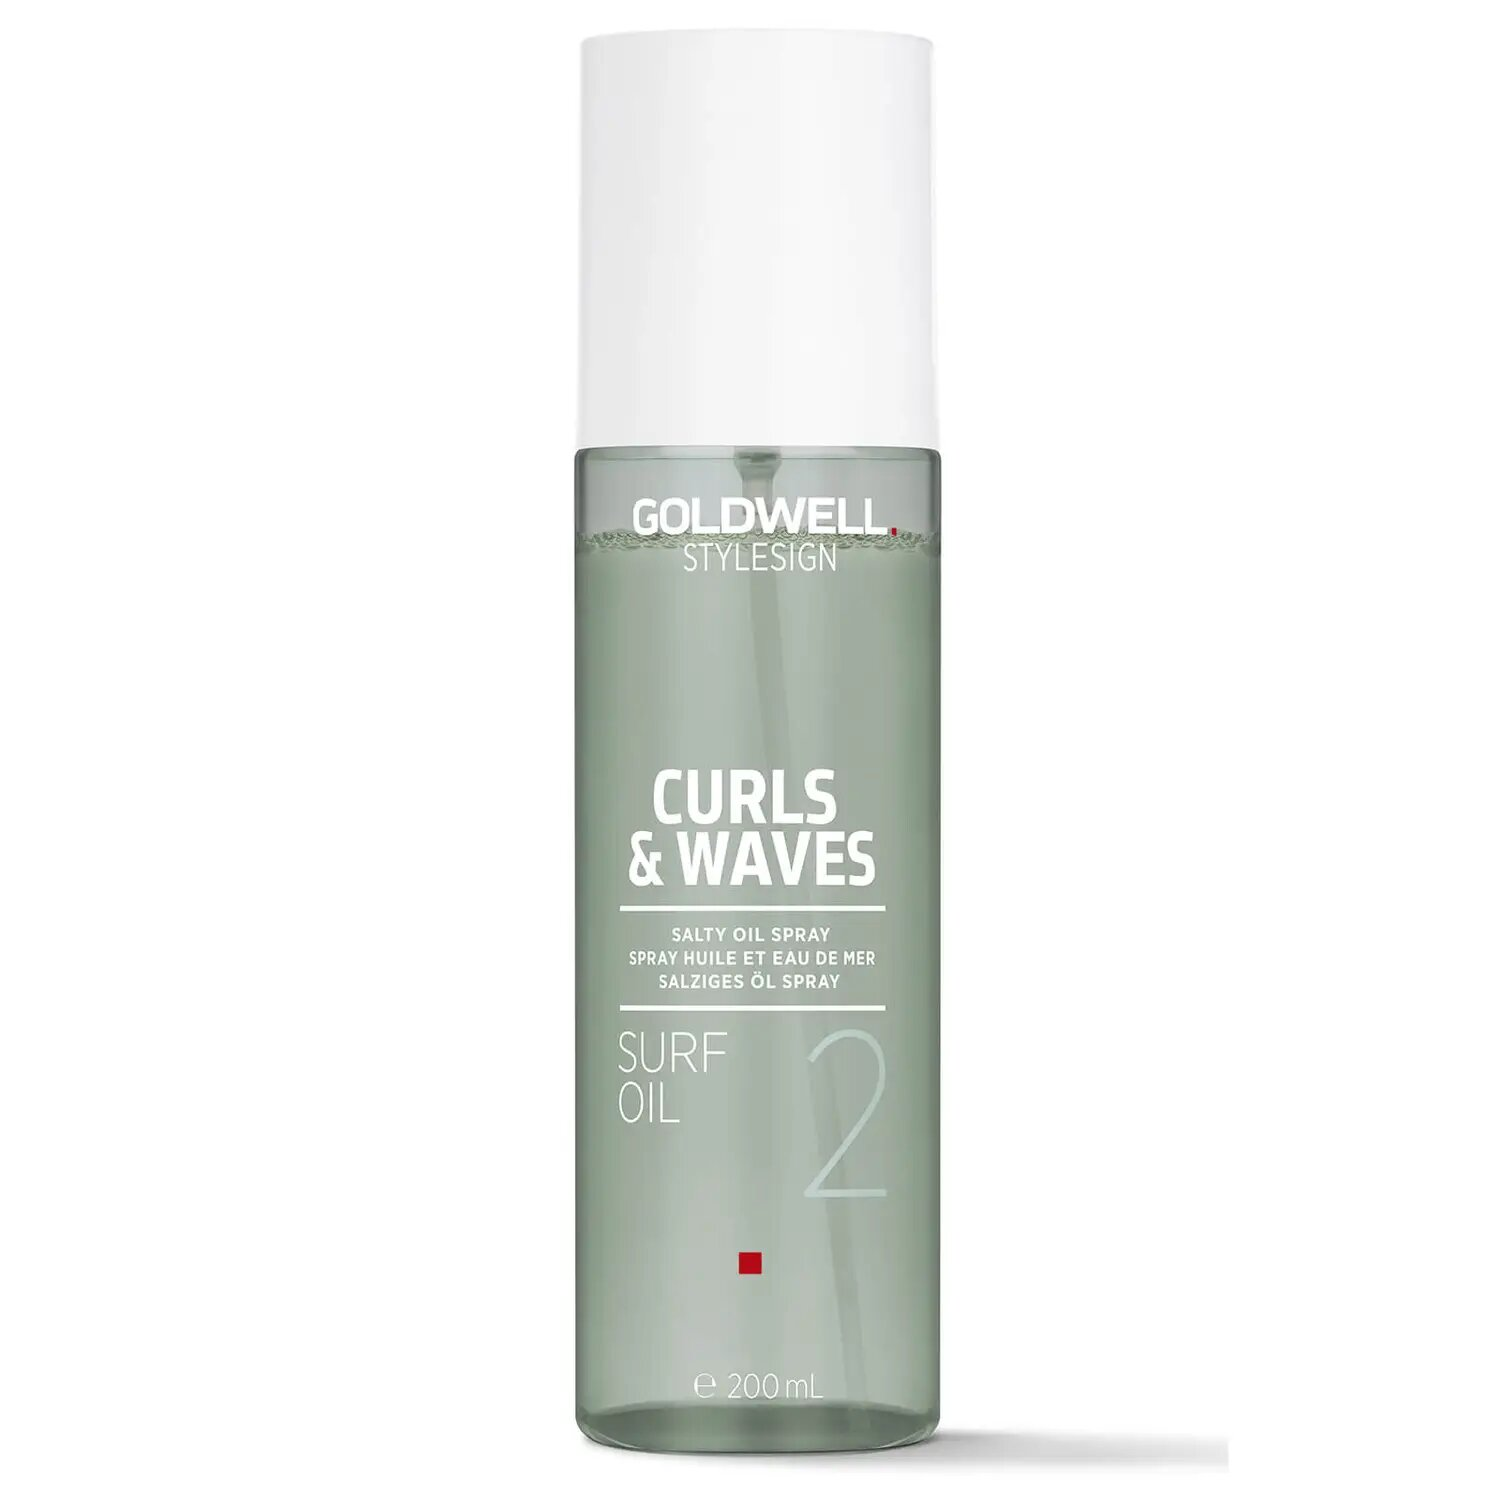 Goldwell StyleSign Curls and Waves Surf Oil